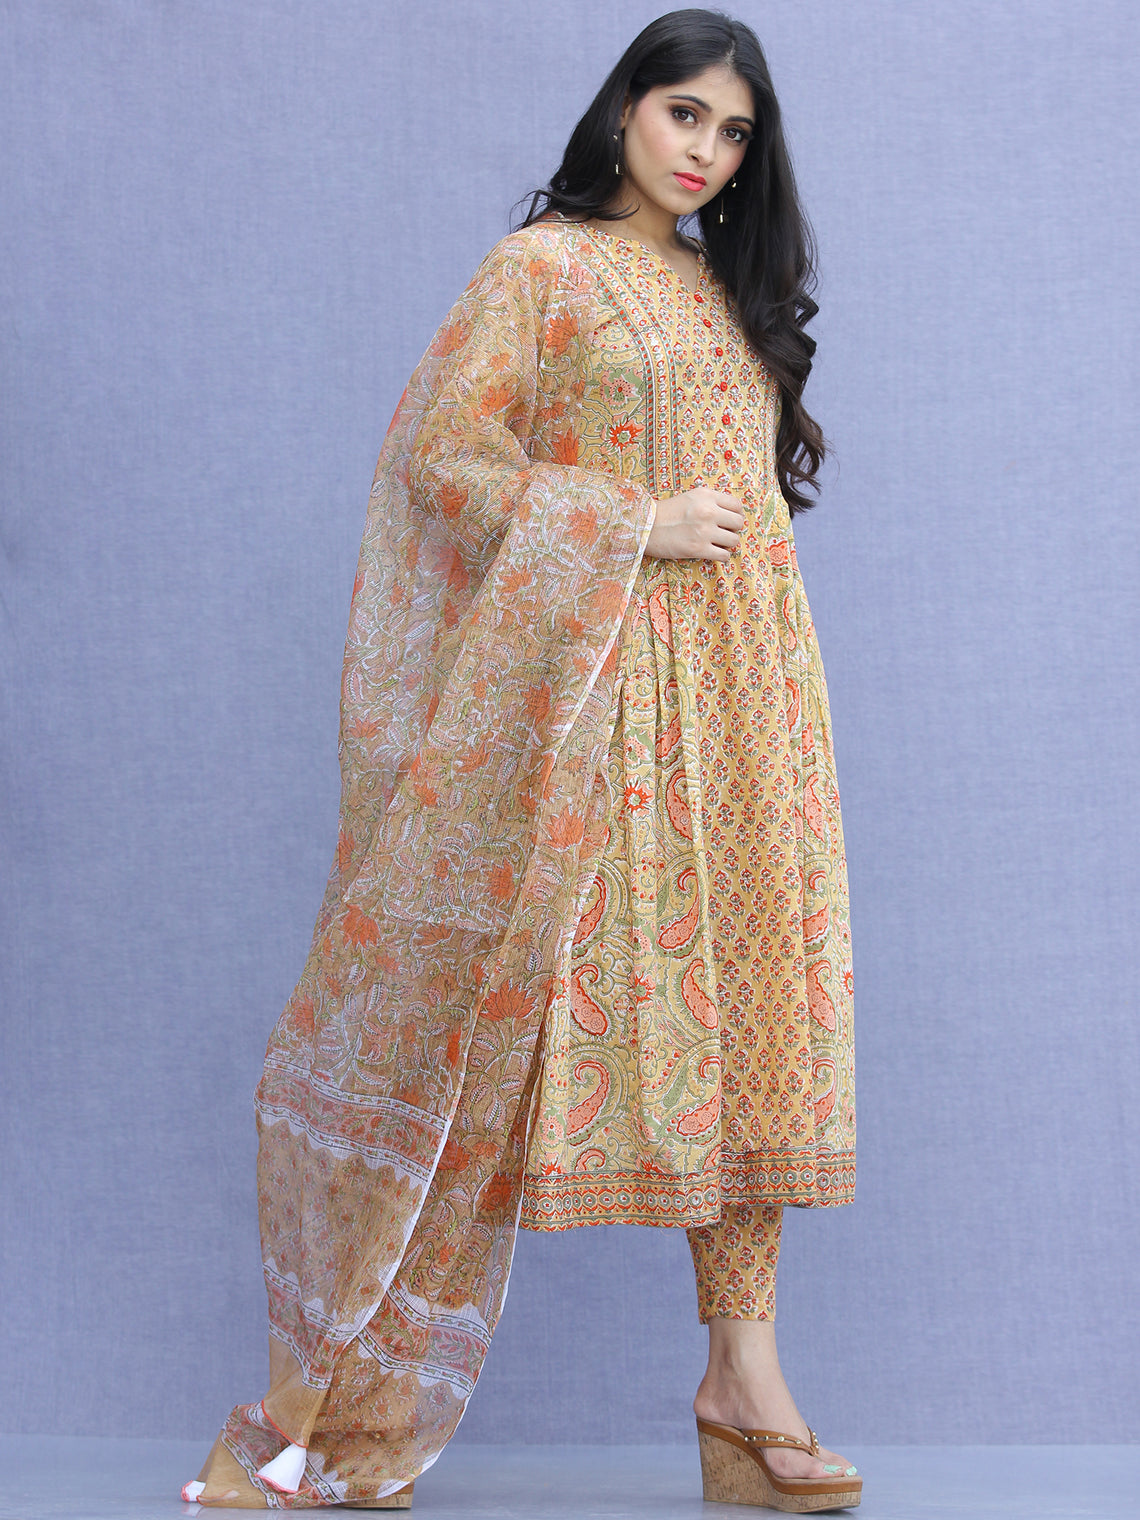 Jashn Anjum - Set of Kurta Pants & Dupatta - KS70A2272D